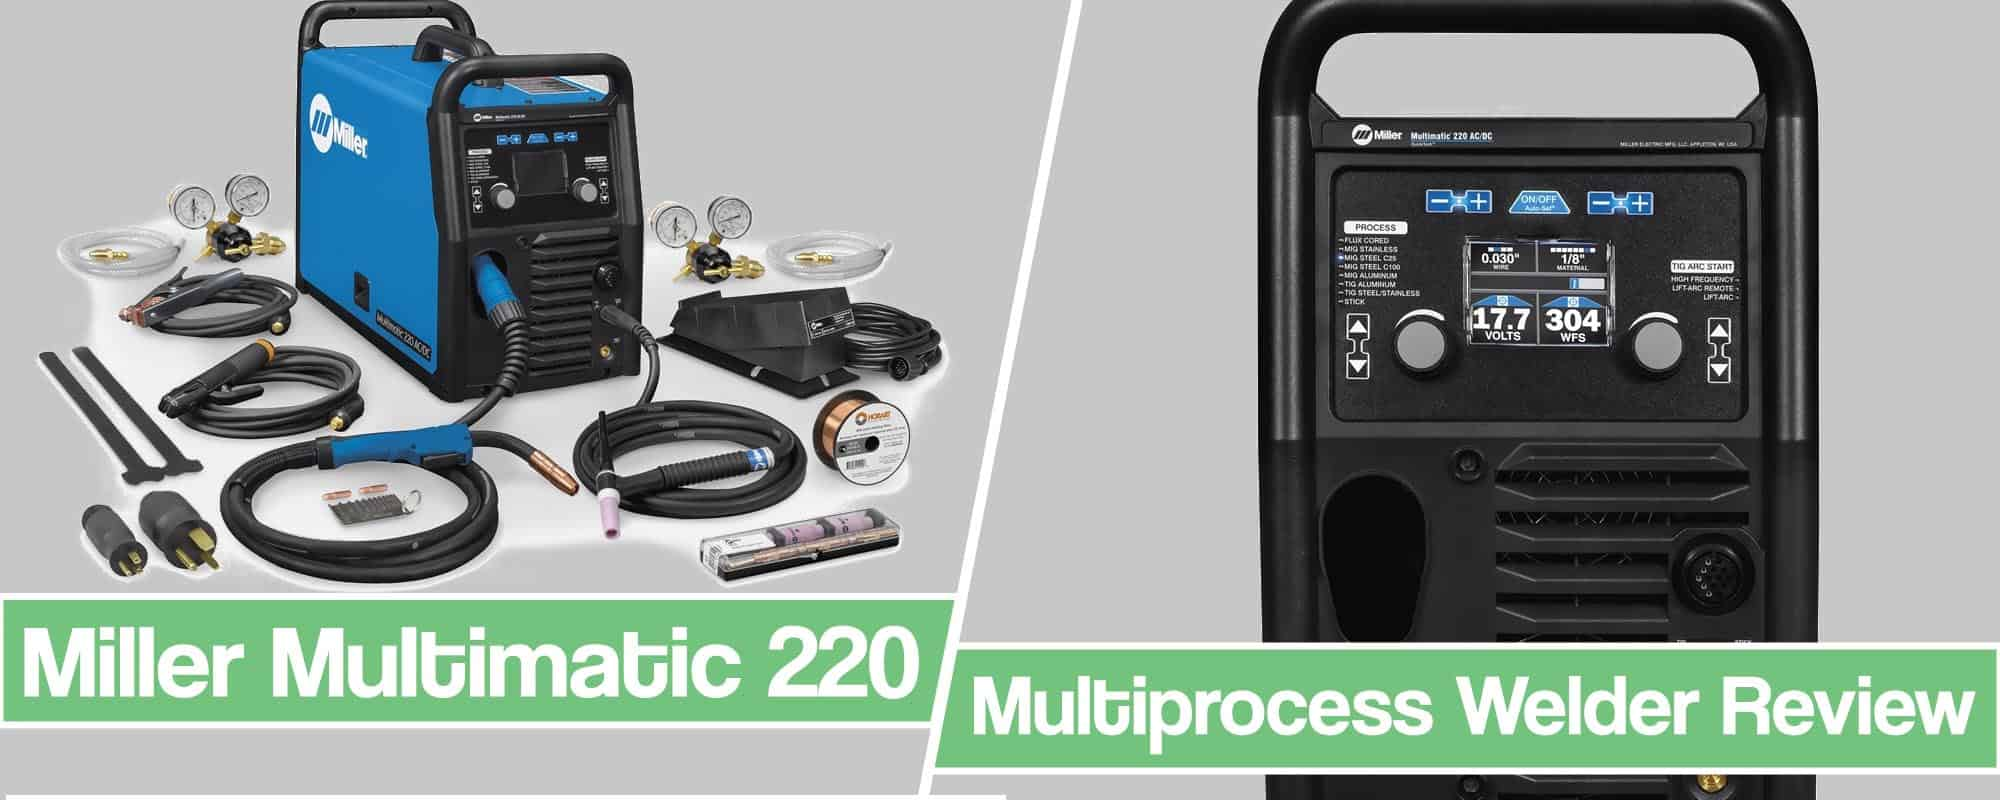 Feature image for Miller Multimatic 220 Review article